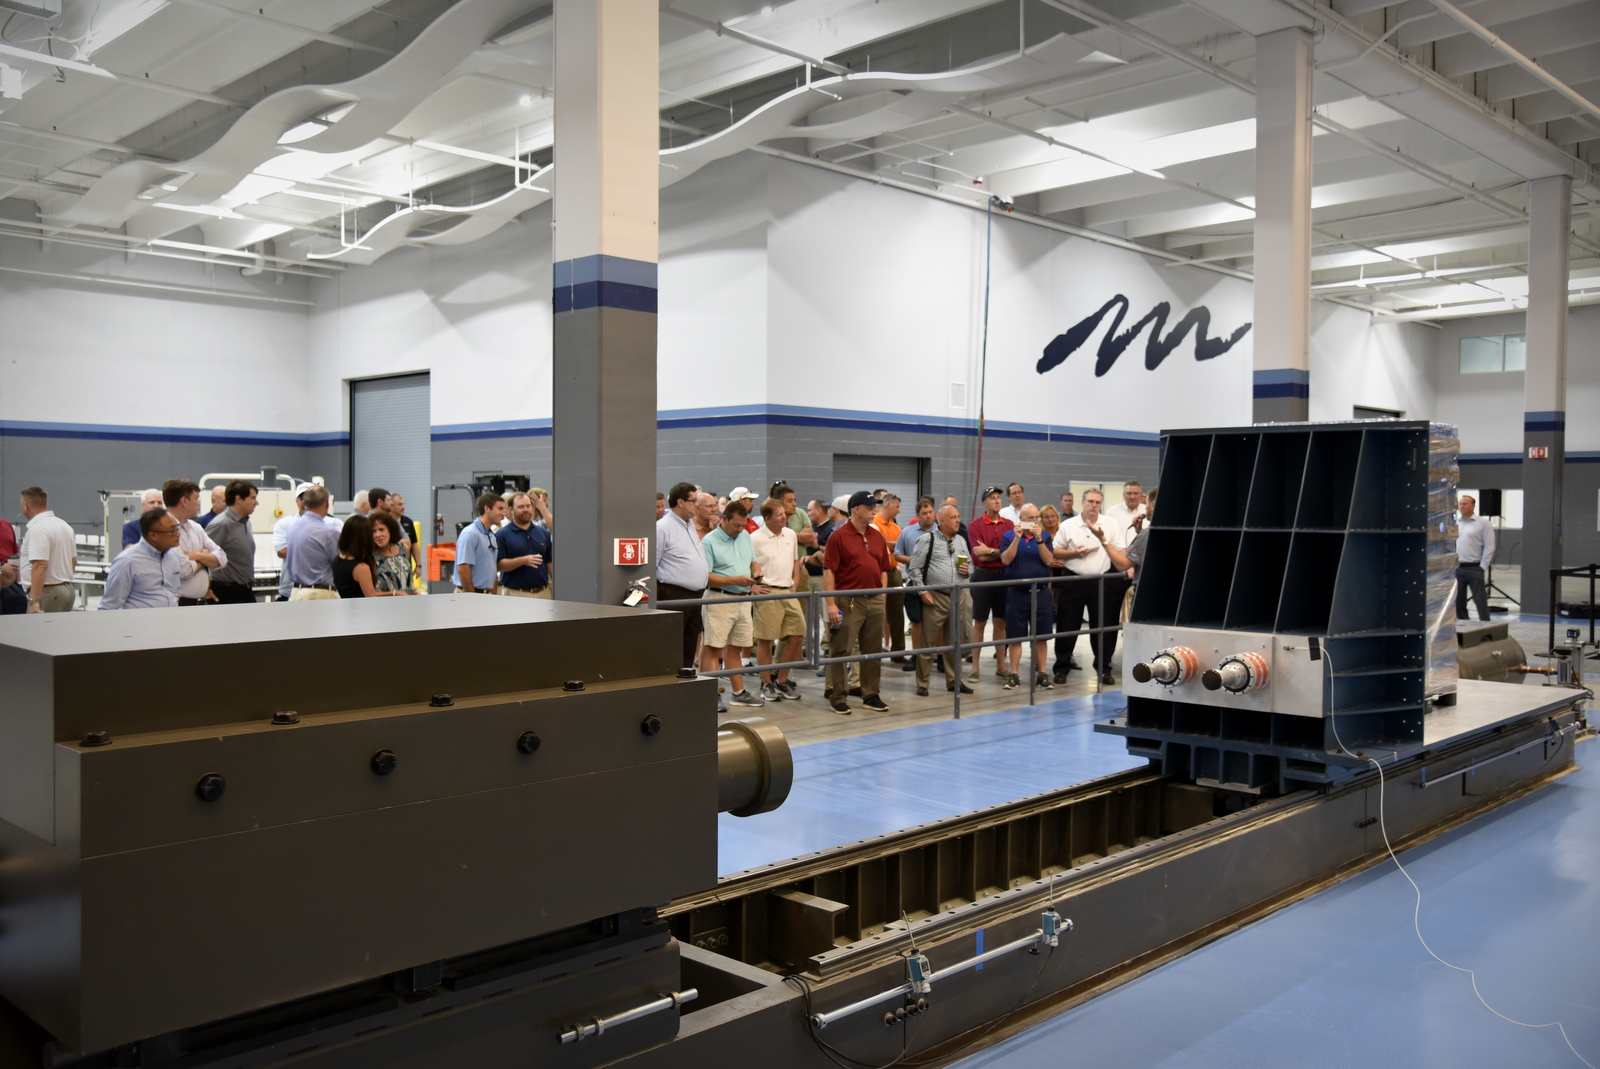 Crowd of people watching a demonstration of Lansmont's horizontal impact test system (HITS).